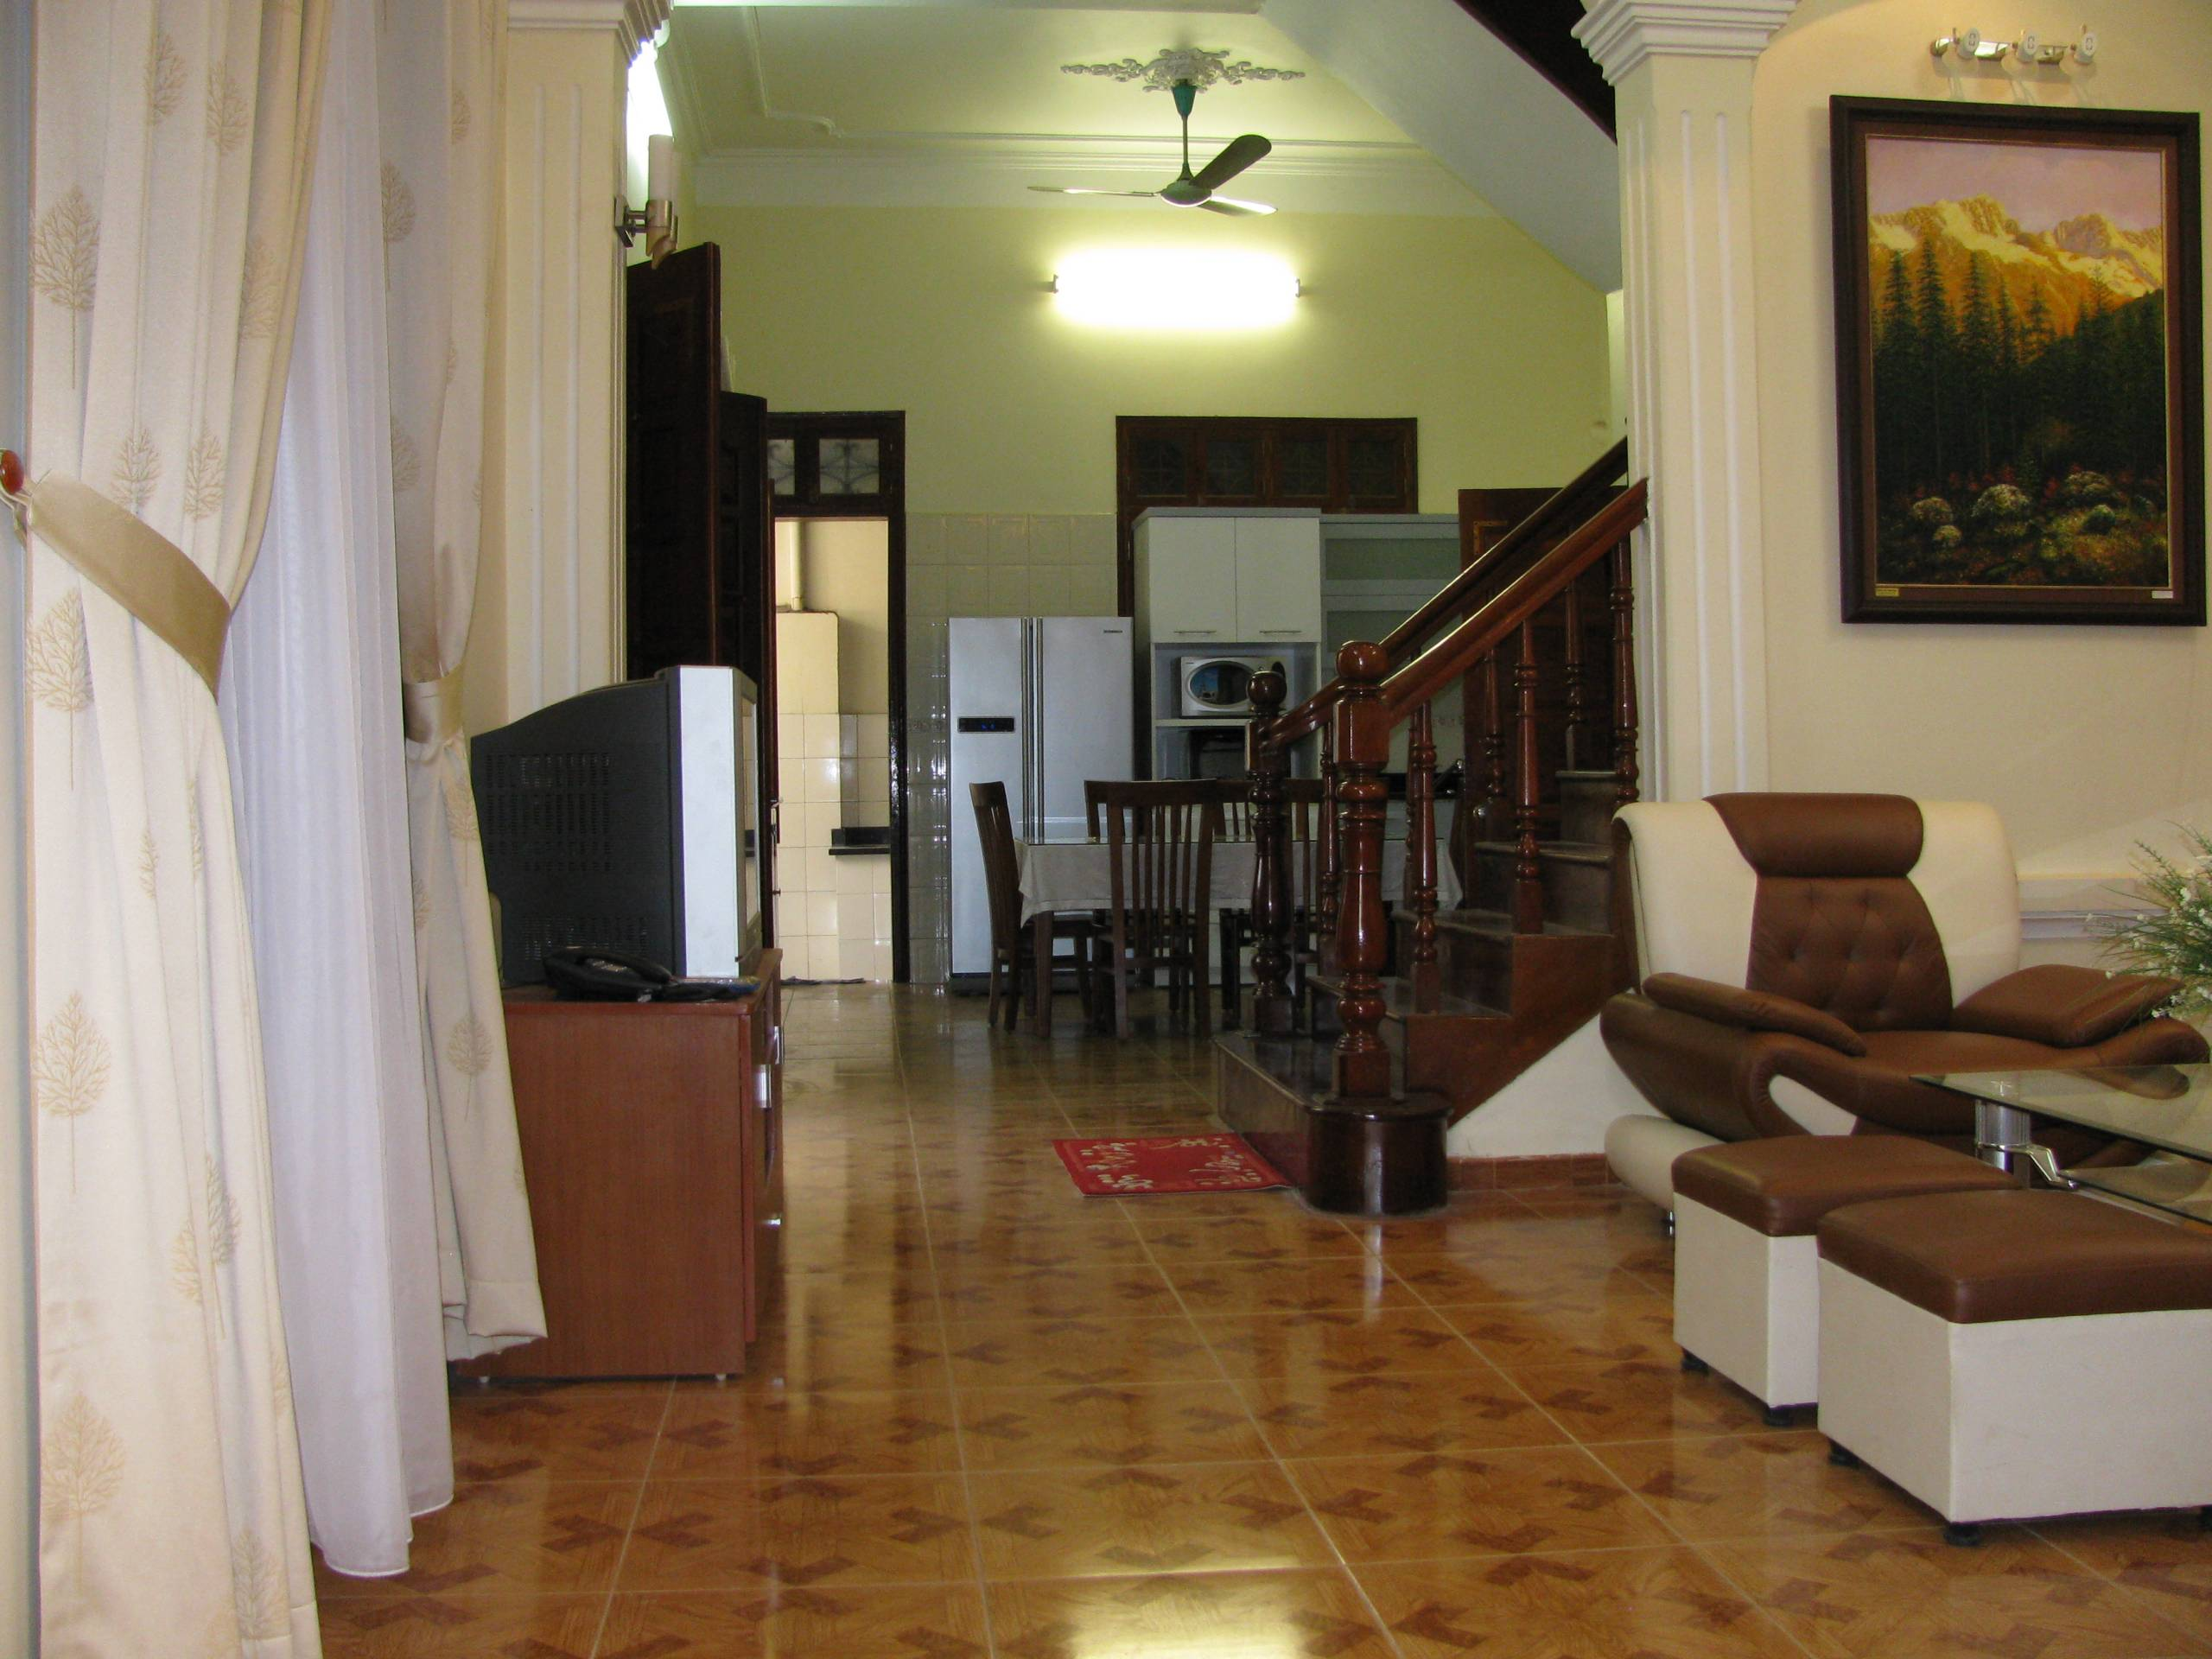 4 bedroom house for rent on Lane 376, Buoi street, Ba Dinh